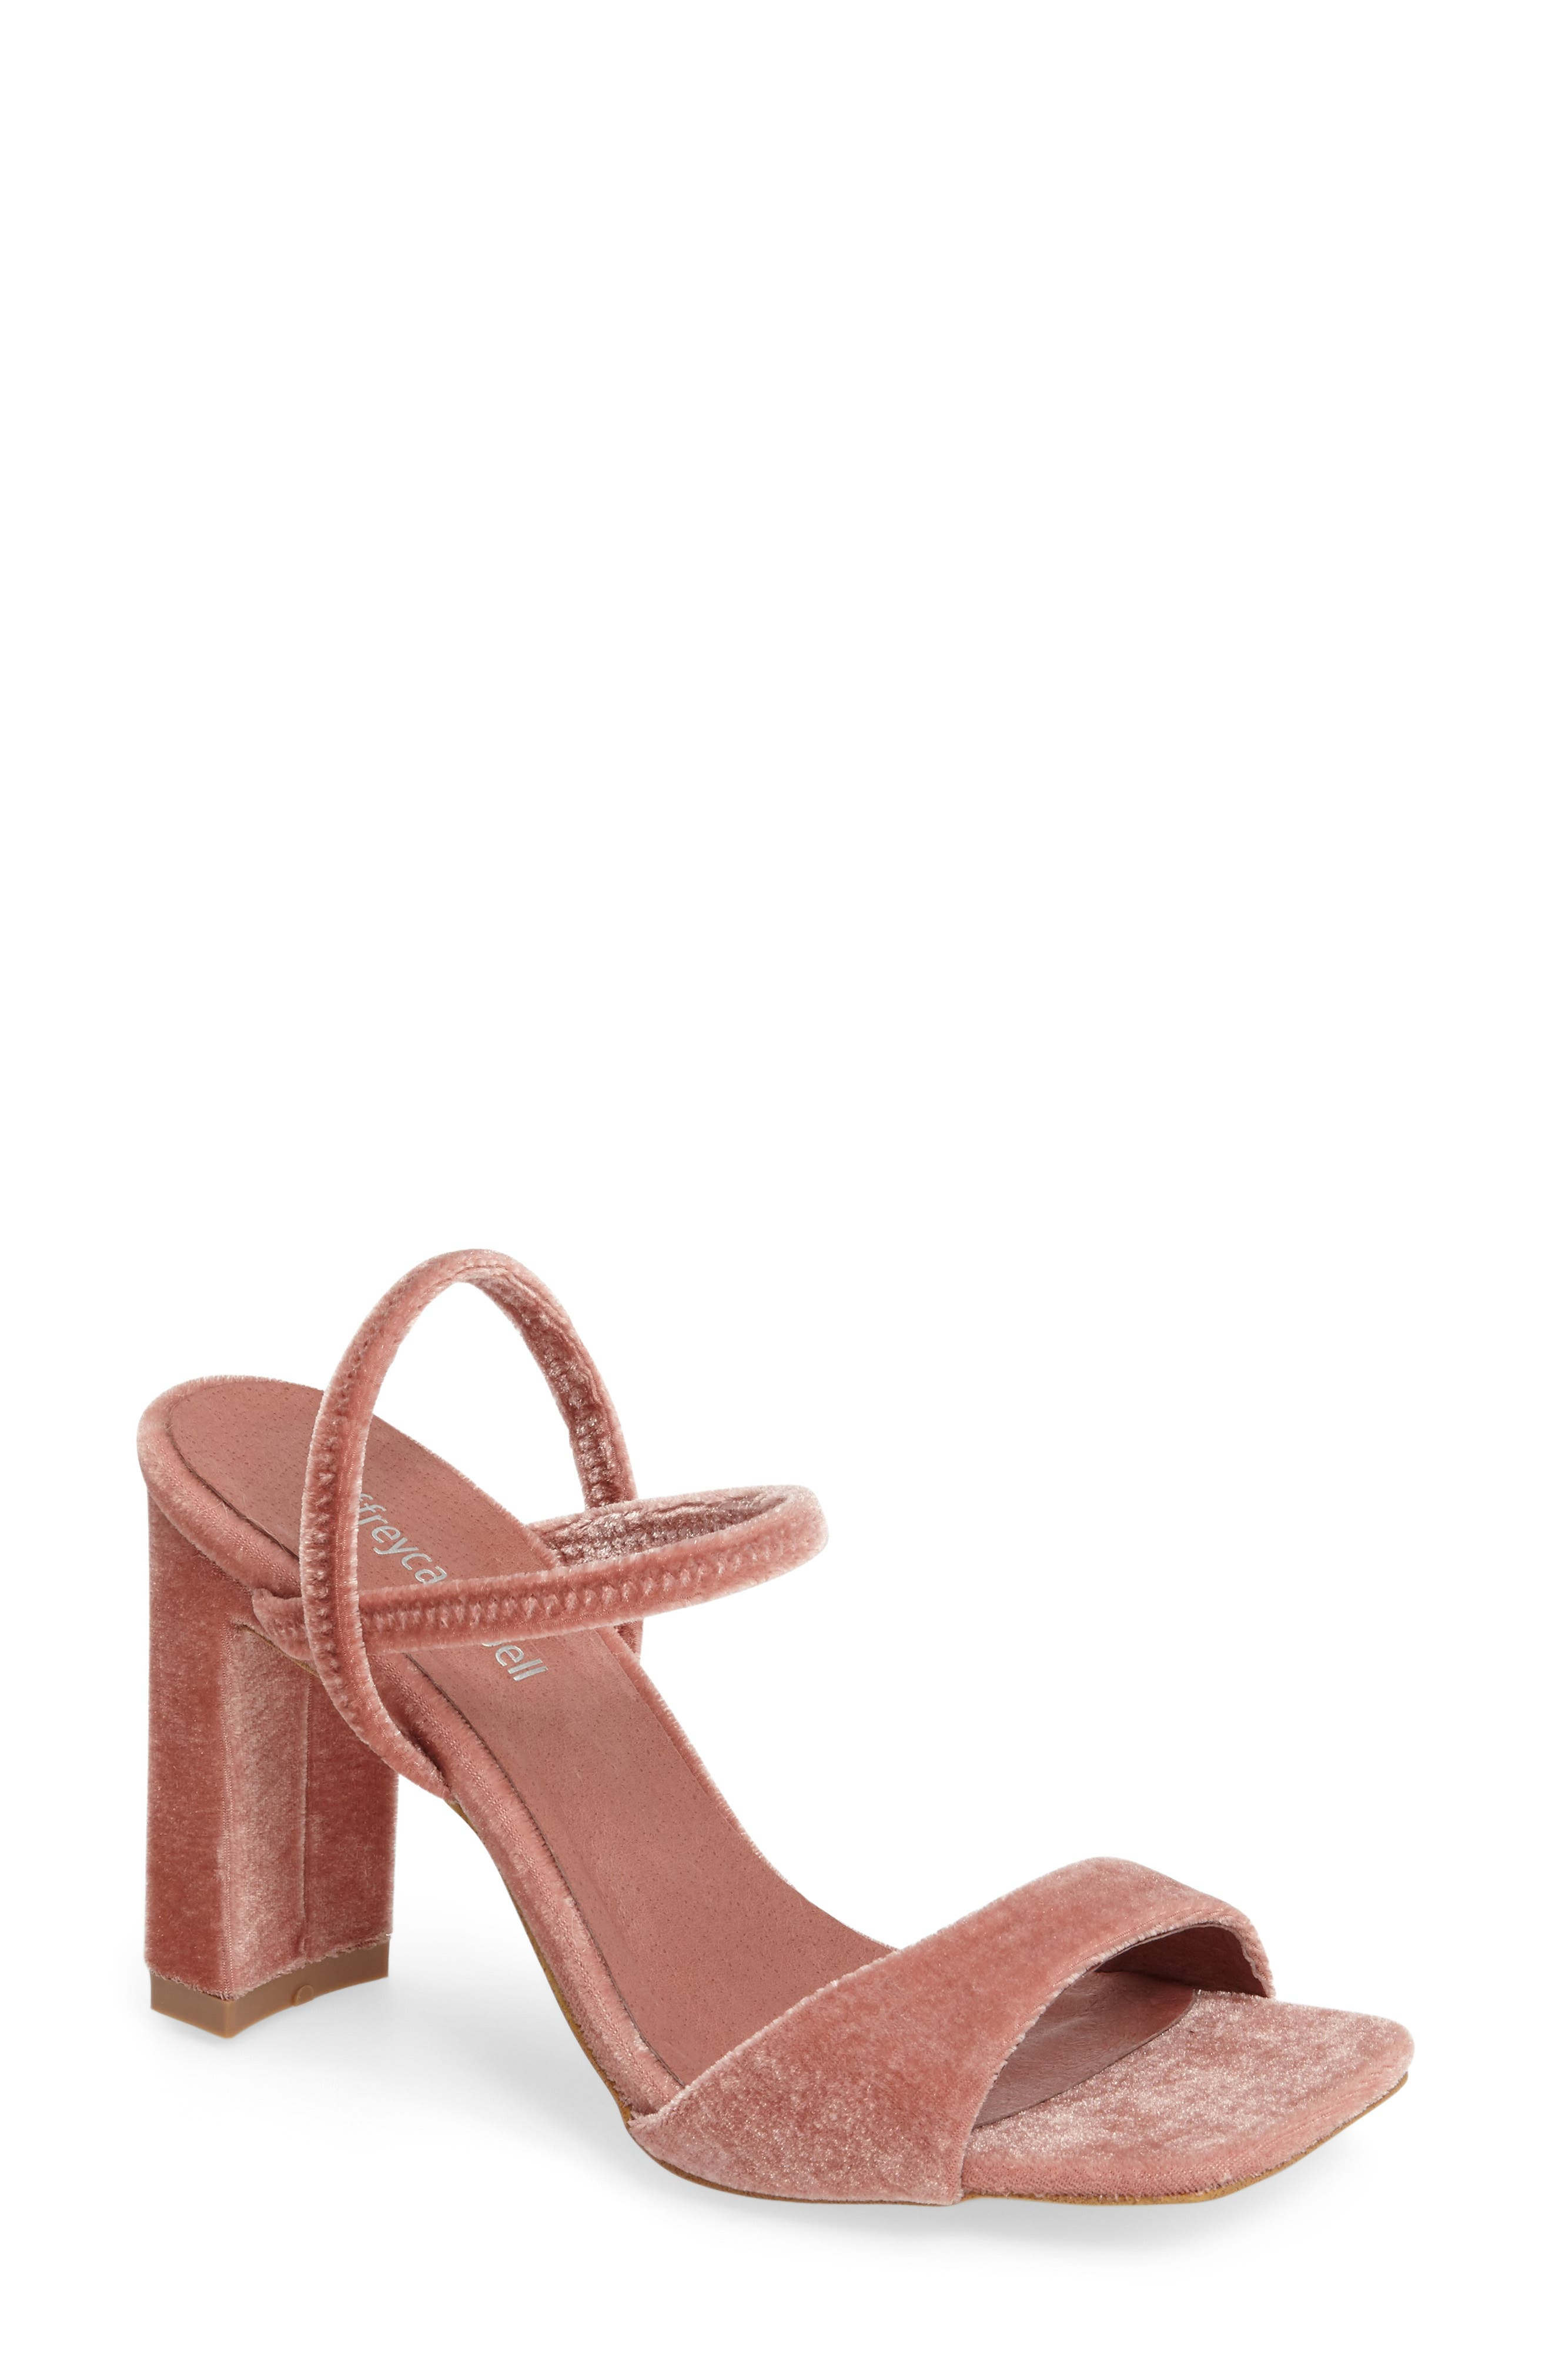 Alternate Image 1 Selected - Jeffrey Campbell Carine Square Toe Sandal (Women)